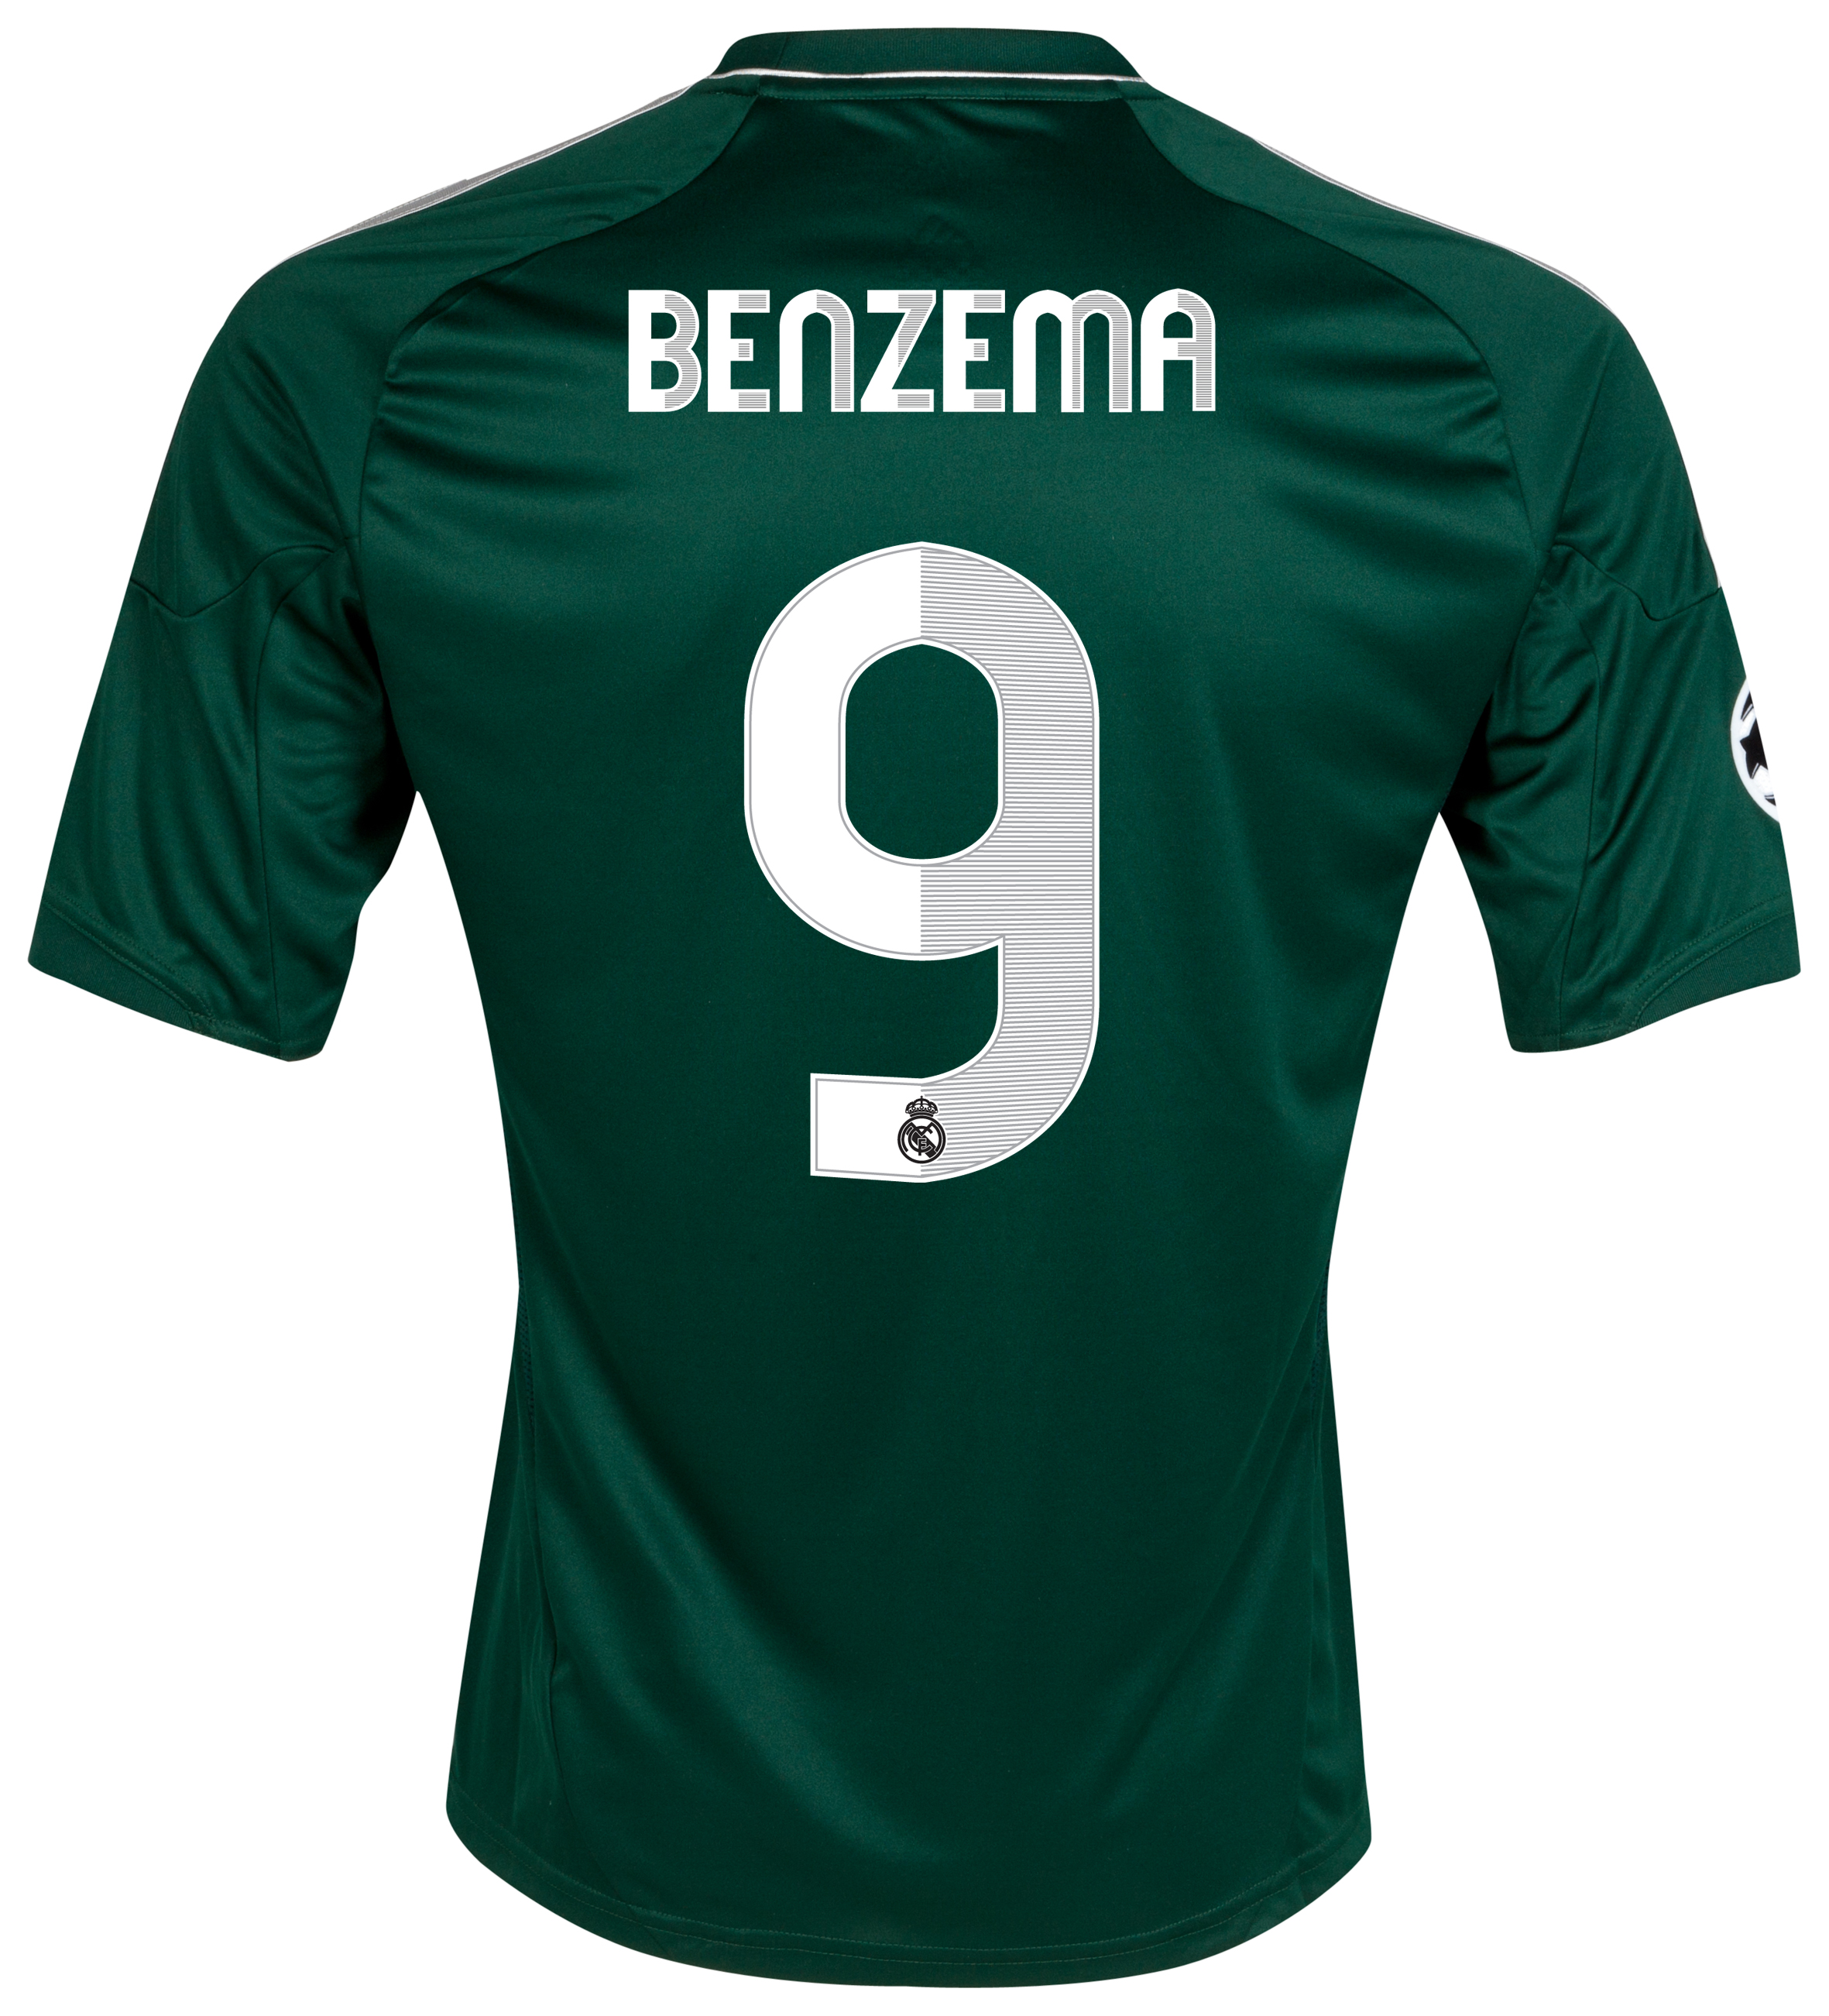 Real Madrid UEFA Champions League Third Shirt 2012/13 - Youths with Benzema 9 printing